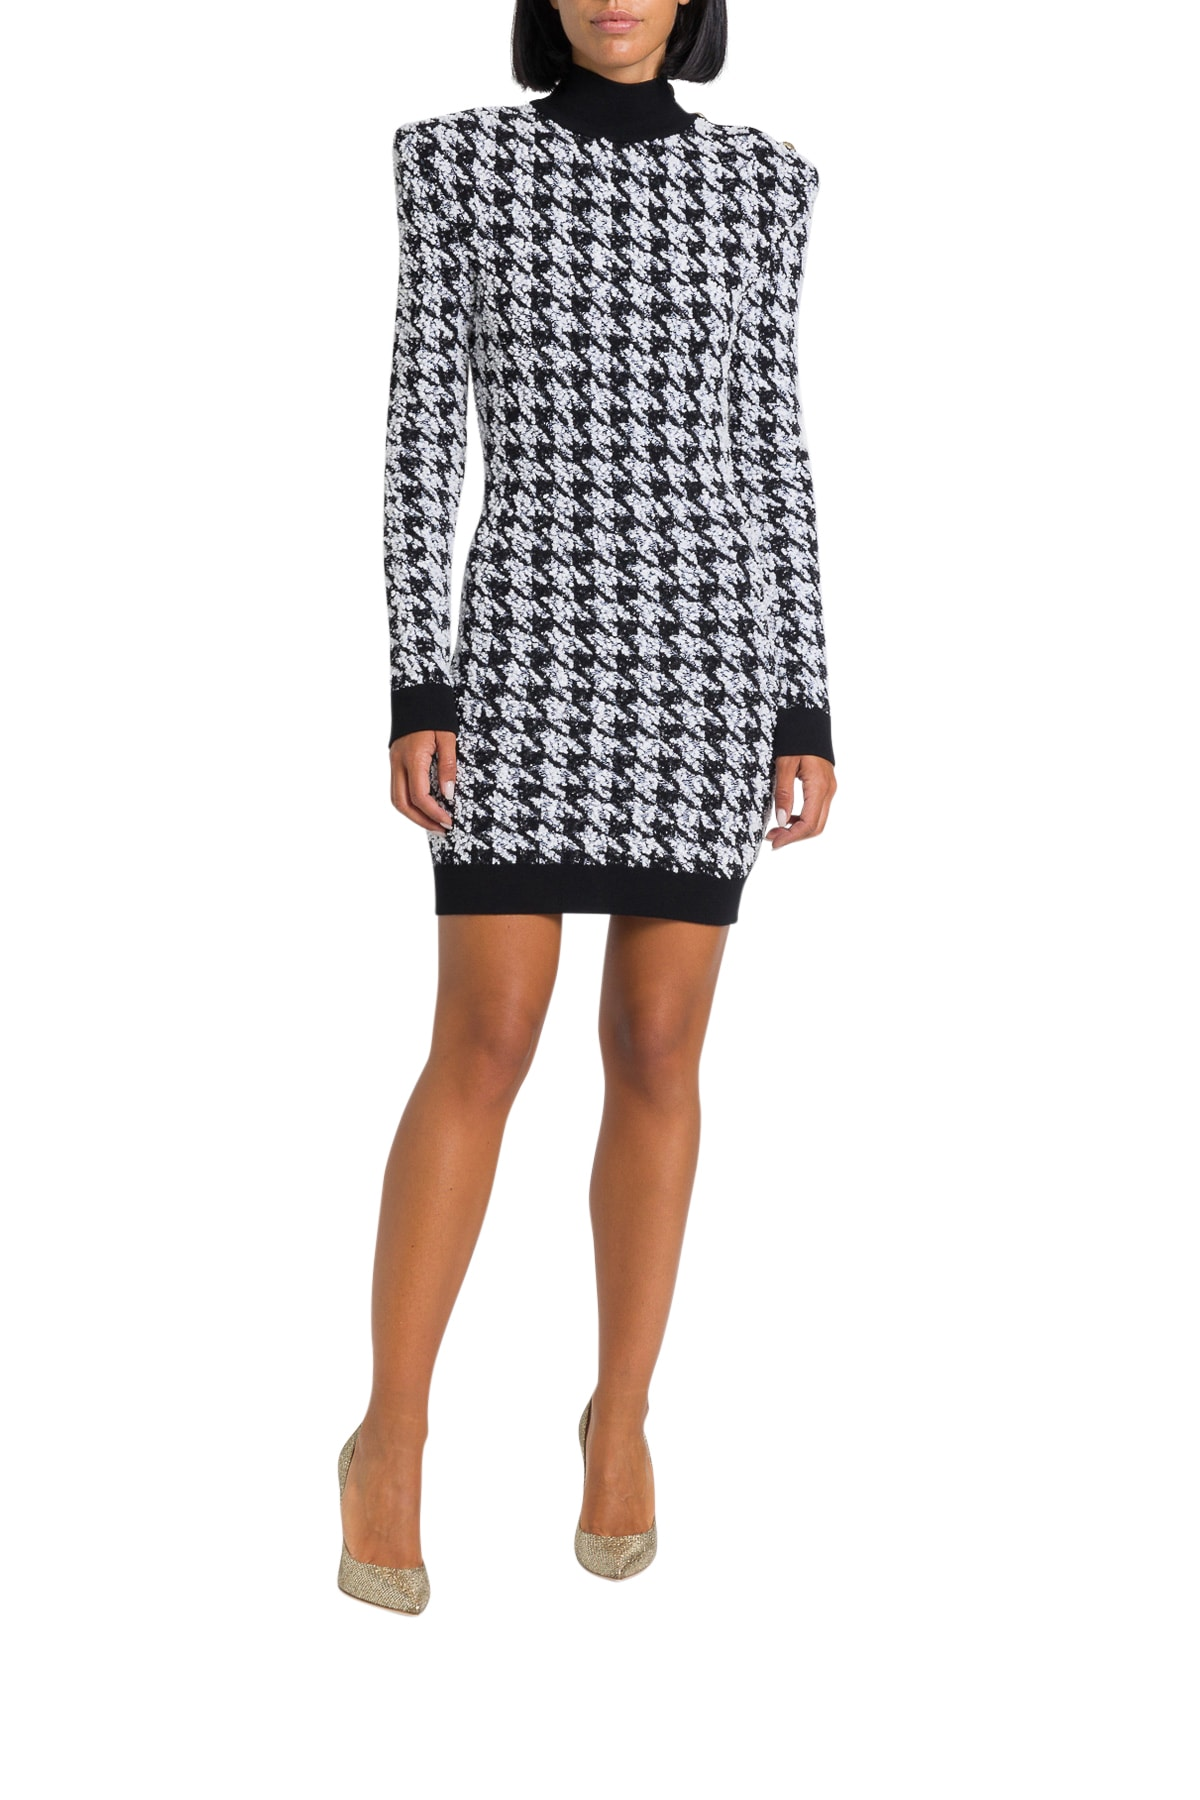 Photo of  Balmain Houndstooth Tweed Crochet Dress- shop Balmain  online sales